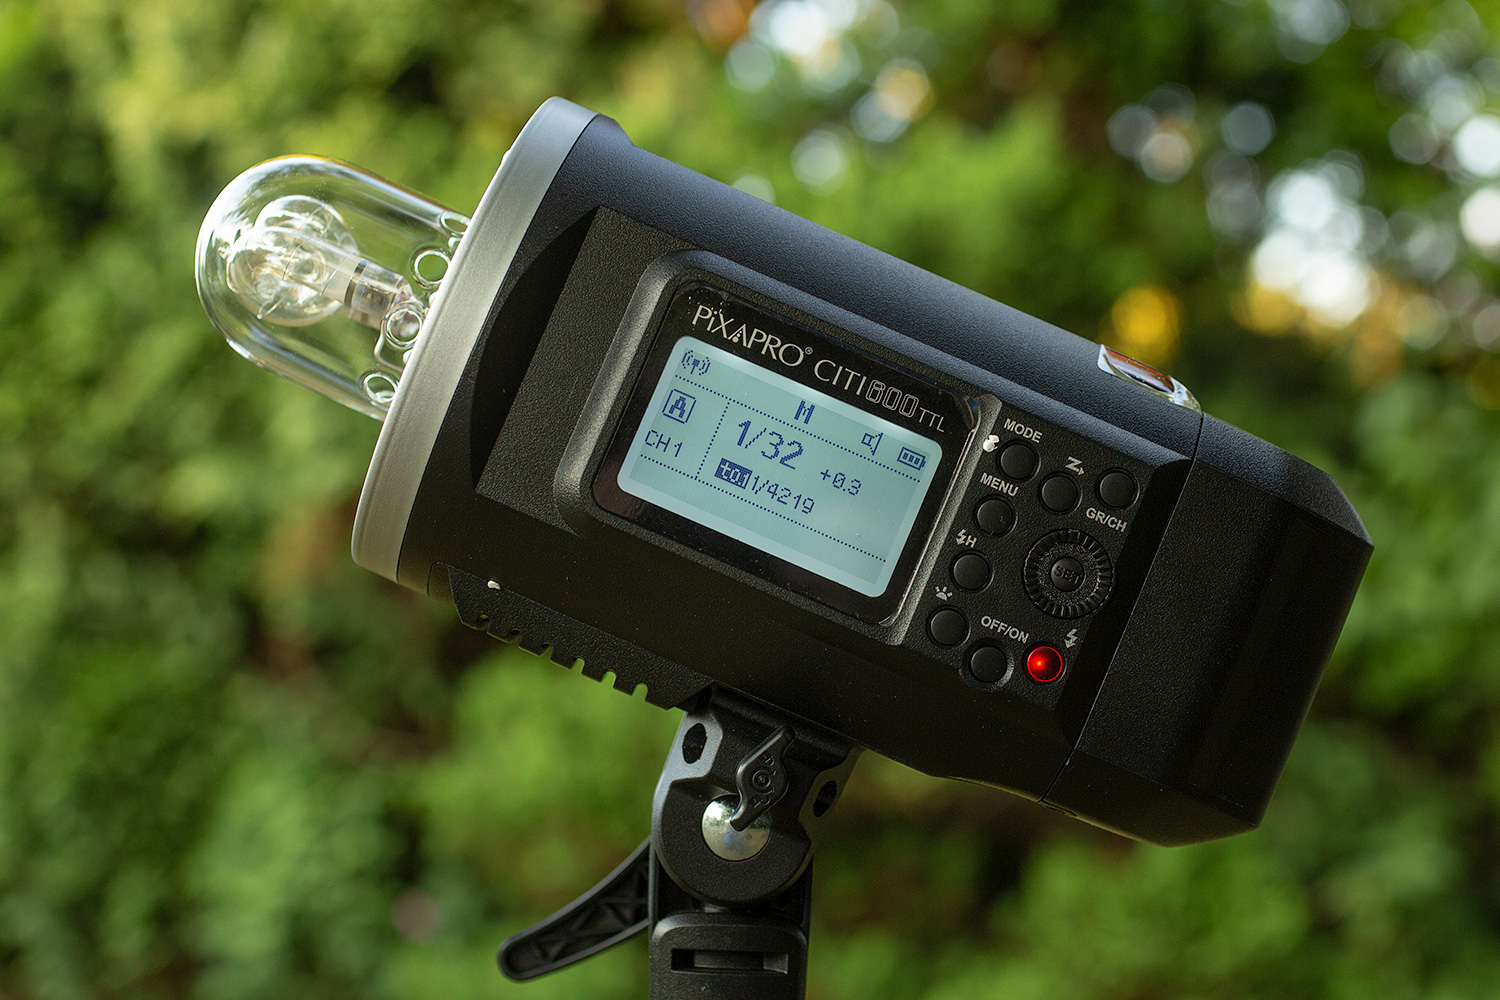 Image: Adjusting the power in manual mode means dialing through all the increments on your flash. Th...